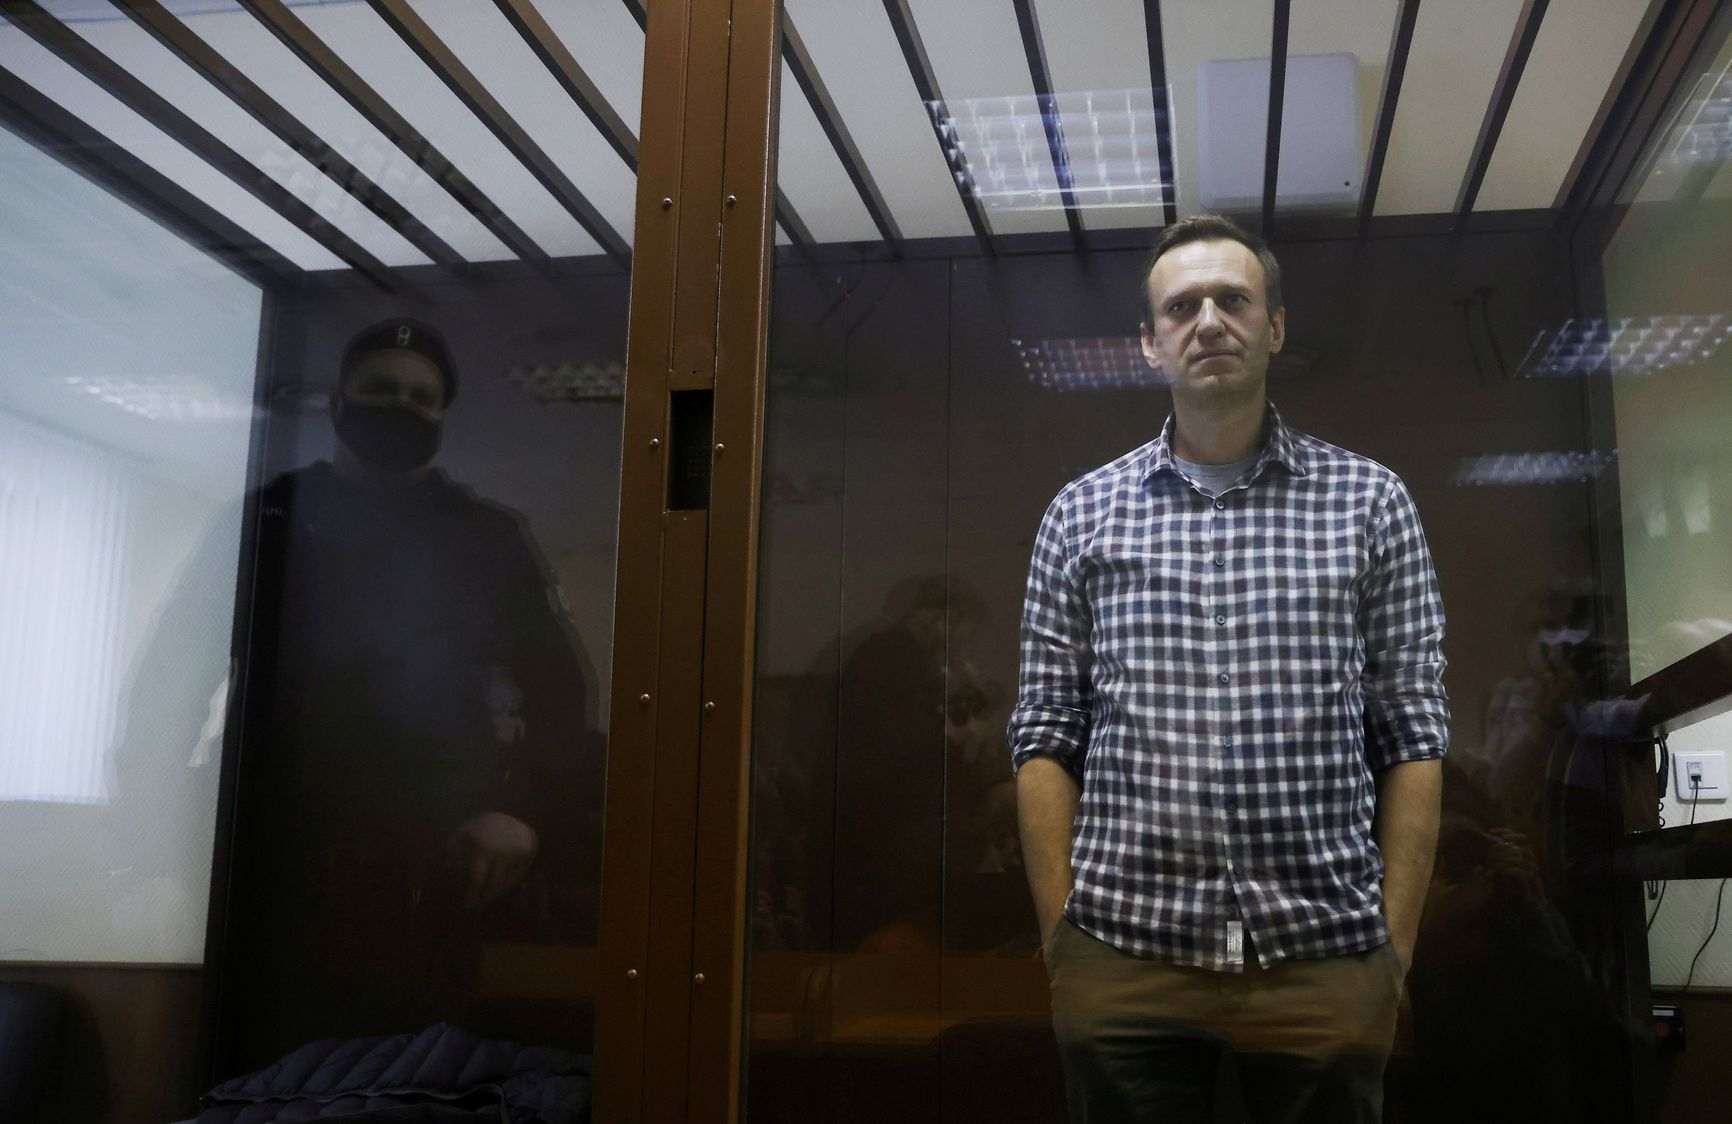 Opposition leader Alexey Navalny is held in prison since January